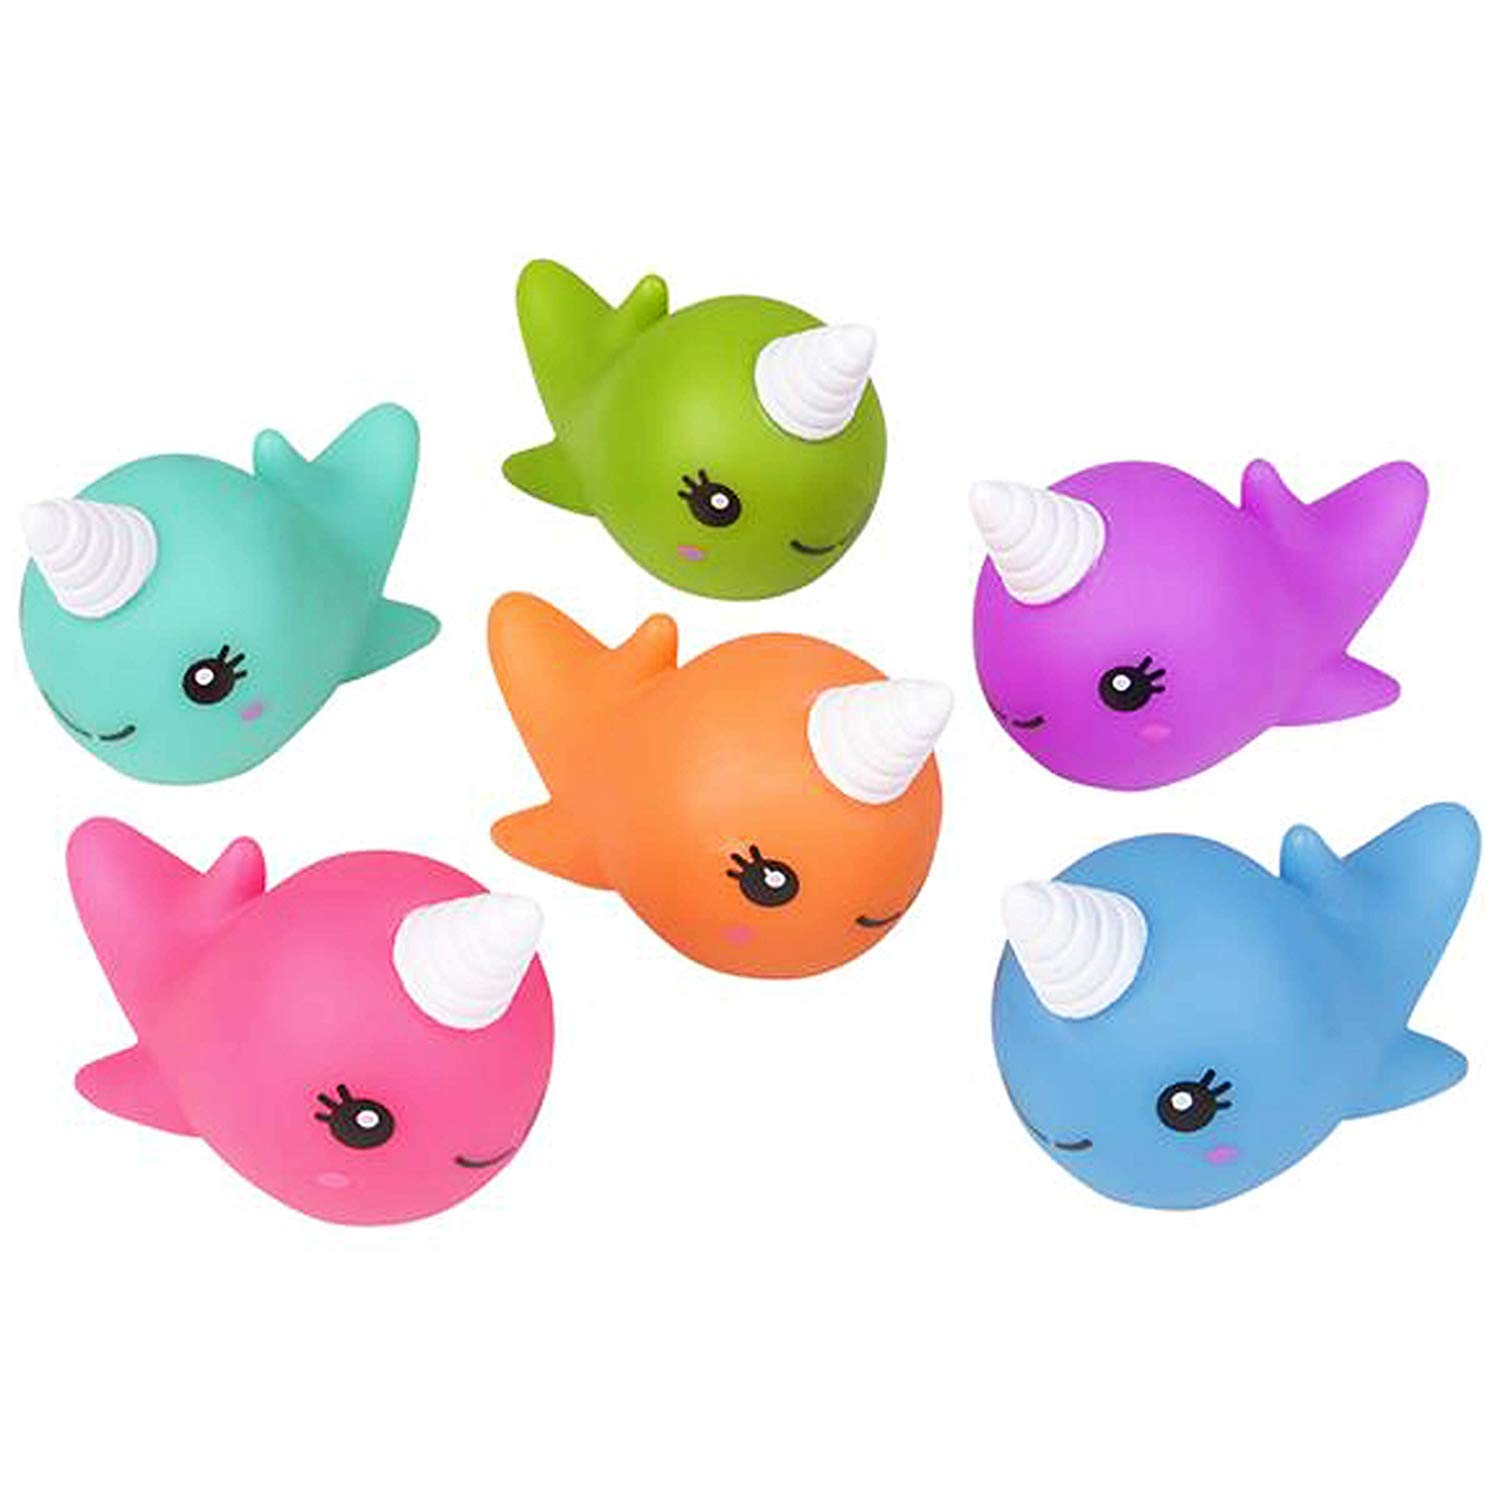 HAPPY DEALS ~ 12 Pack 2 Rubber Water Squirting NARWHAL Figures